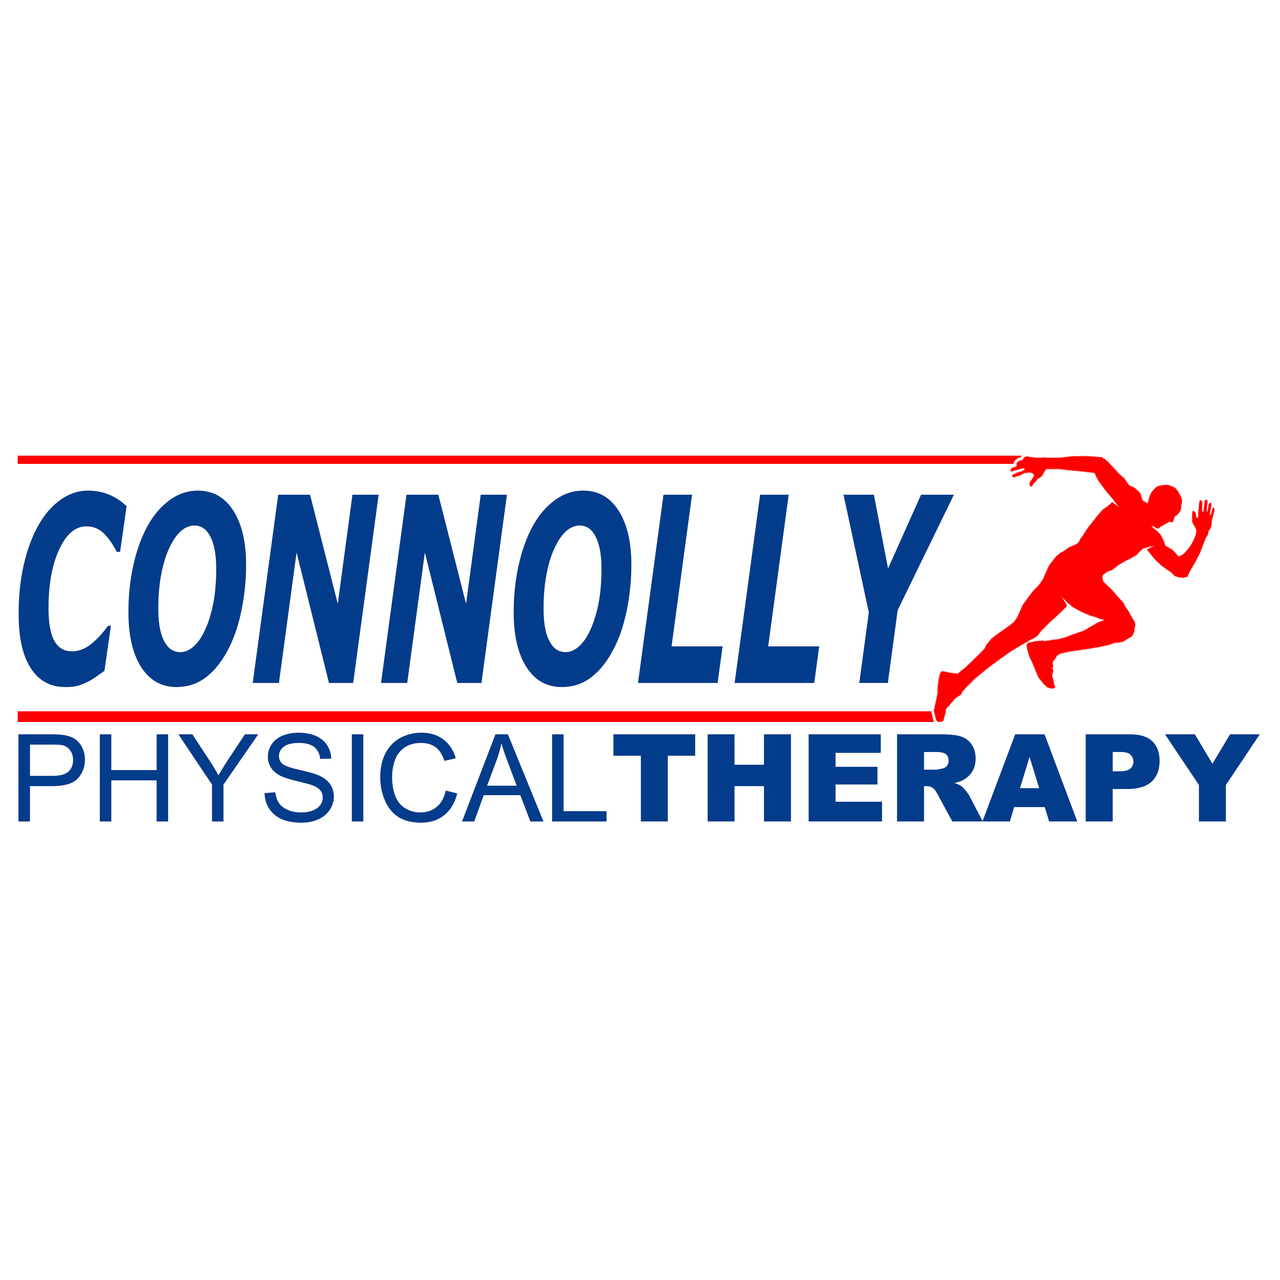 Connolly Physical Therapy- Andrew Connolly